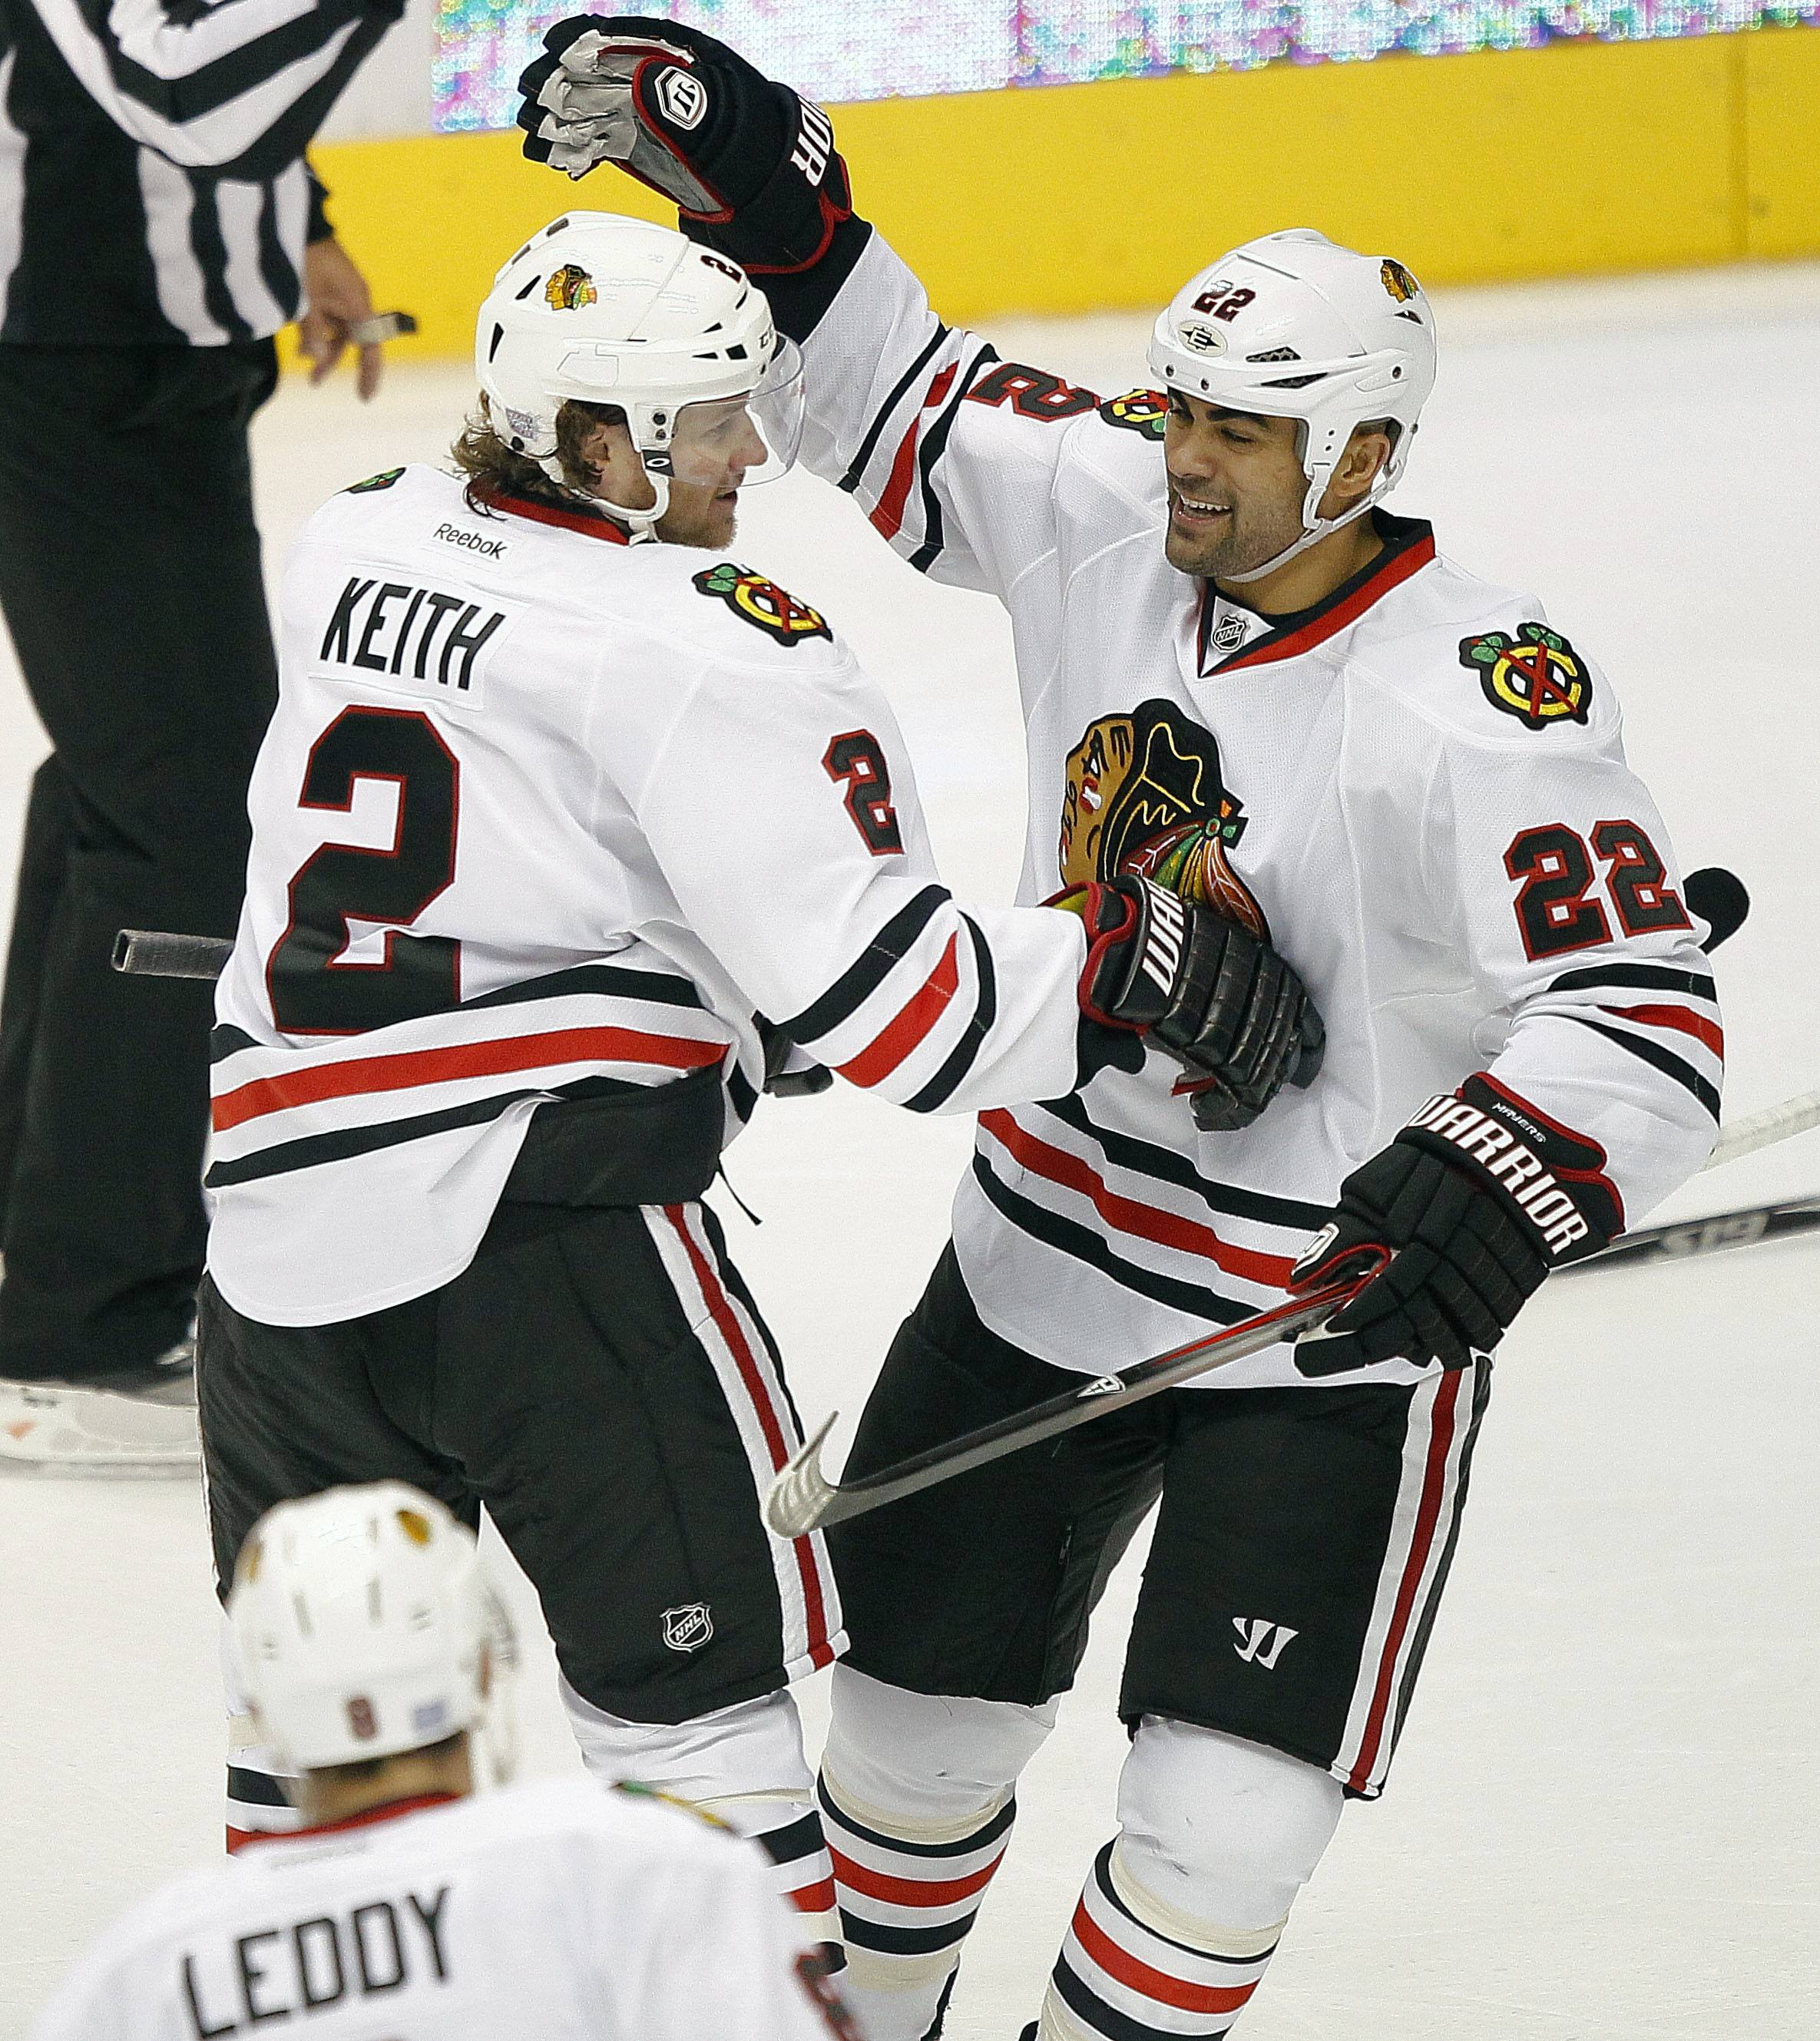 Jamal Mayers, celebrating his goal with Duncan Keith in a 2011 game in Glendale, Arizona, gave an impassioned locker-room speech in 2013 when the Hawks trailed the Detroit Red Wings 3 games to 1 in the playoffs.